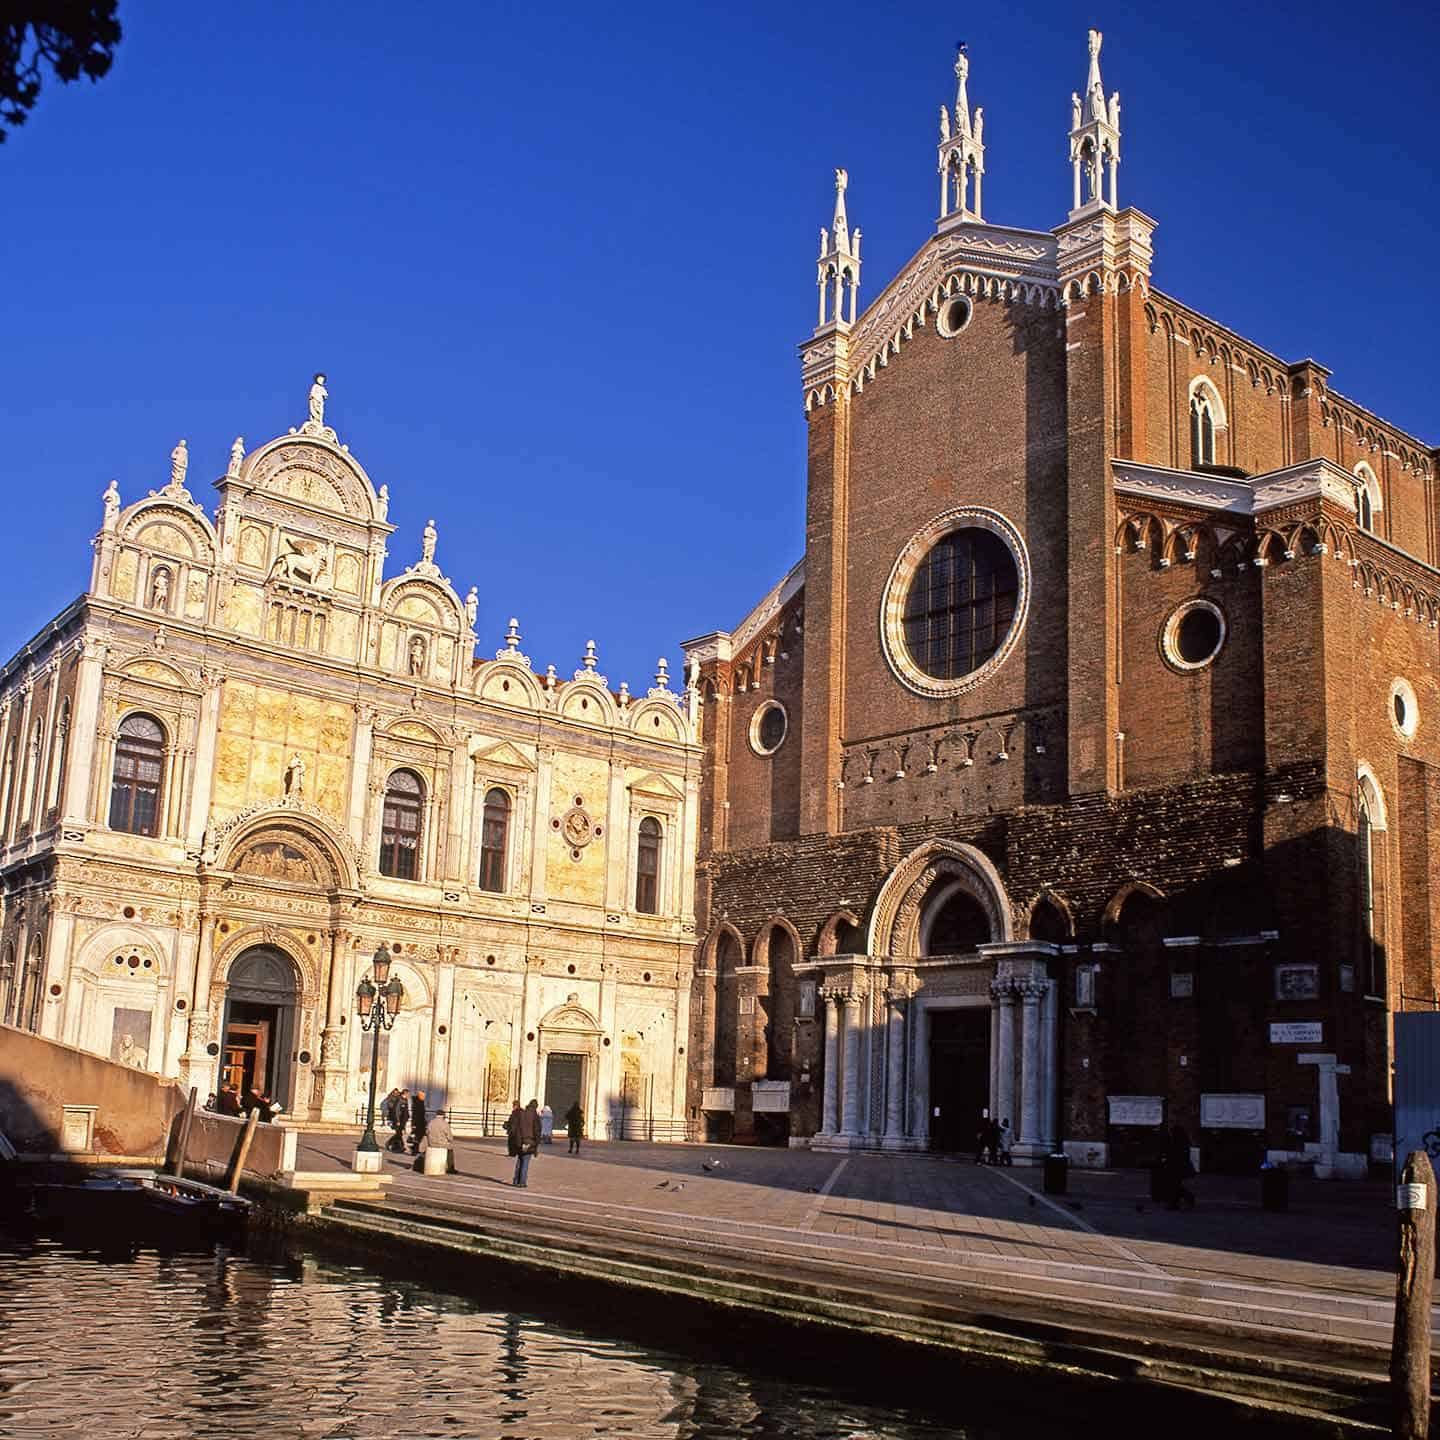 Churches in Venice Italy Image of the Basilica of San Zanipolo